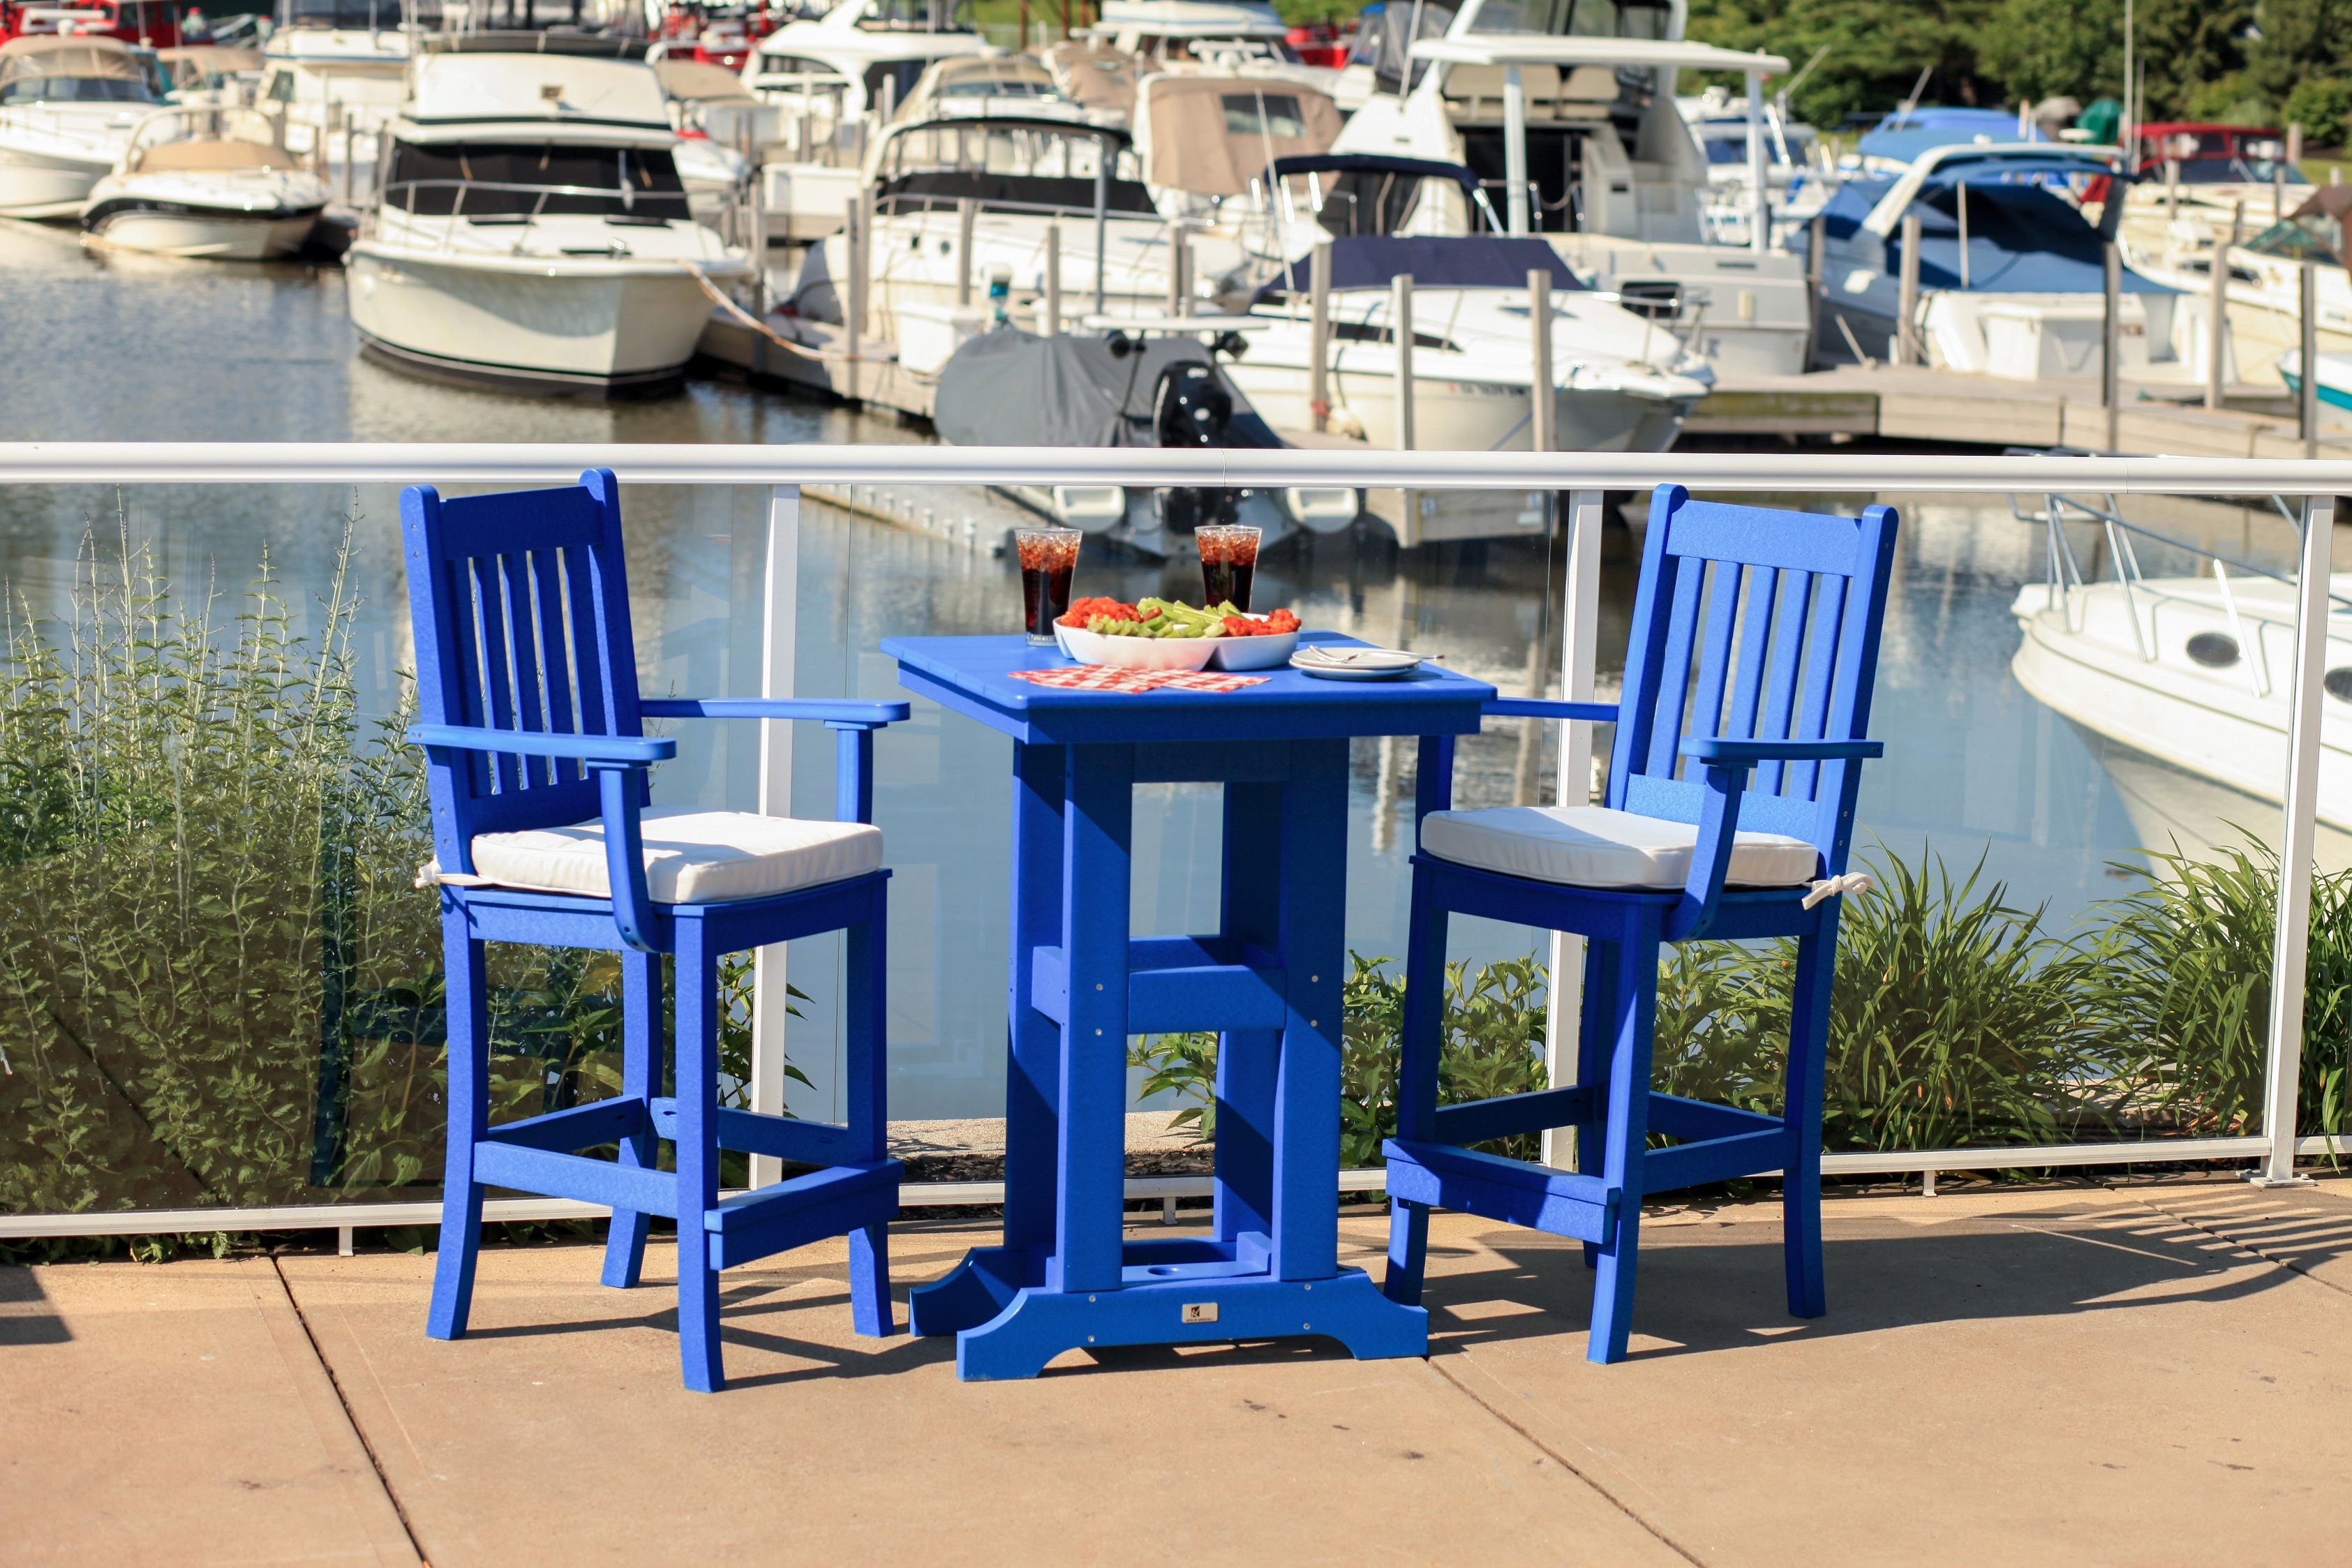 Incroyable Furniture Ideas, Counter Height Patio Furniture With Blue Paito Chairs And  Blue Small Patio Table